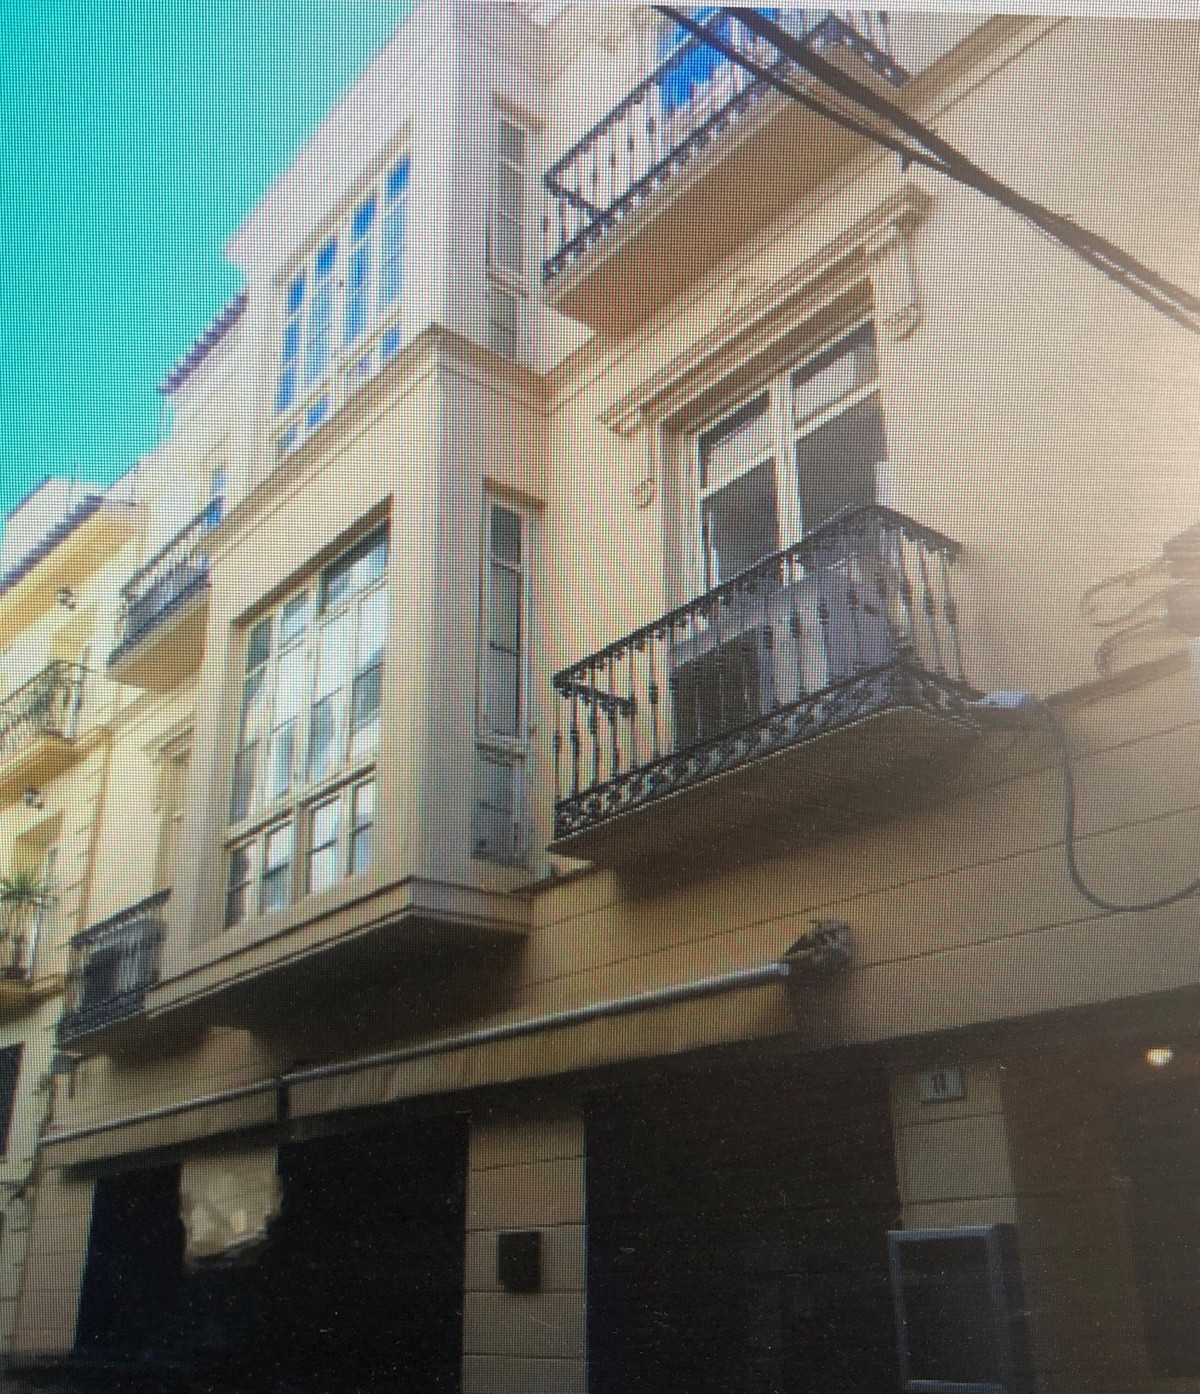 Whole building in Malaga center 412m2 on 120m2 plot Local on ground floor 77m2 First floor apartment,Spain